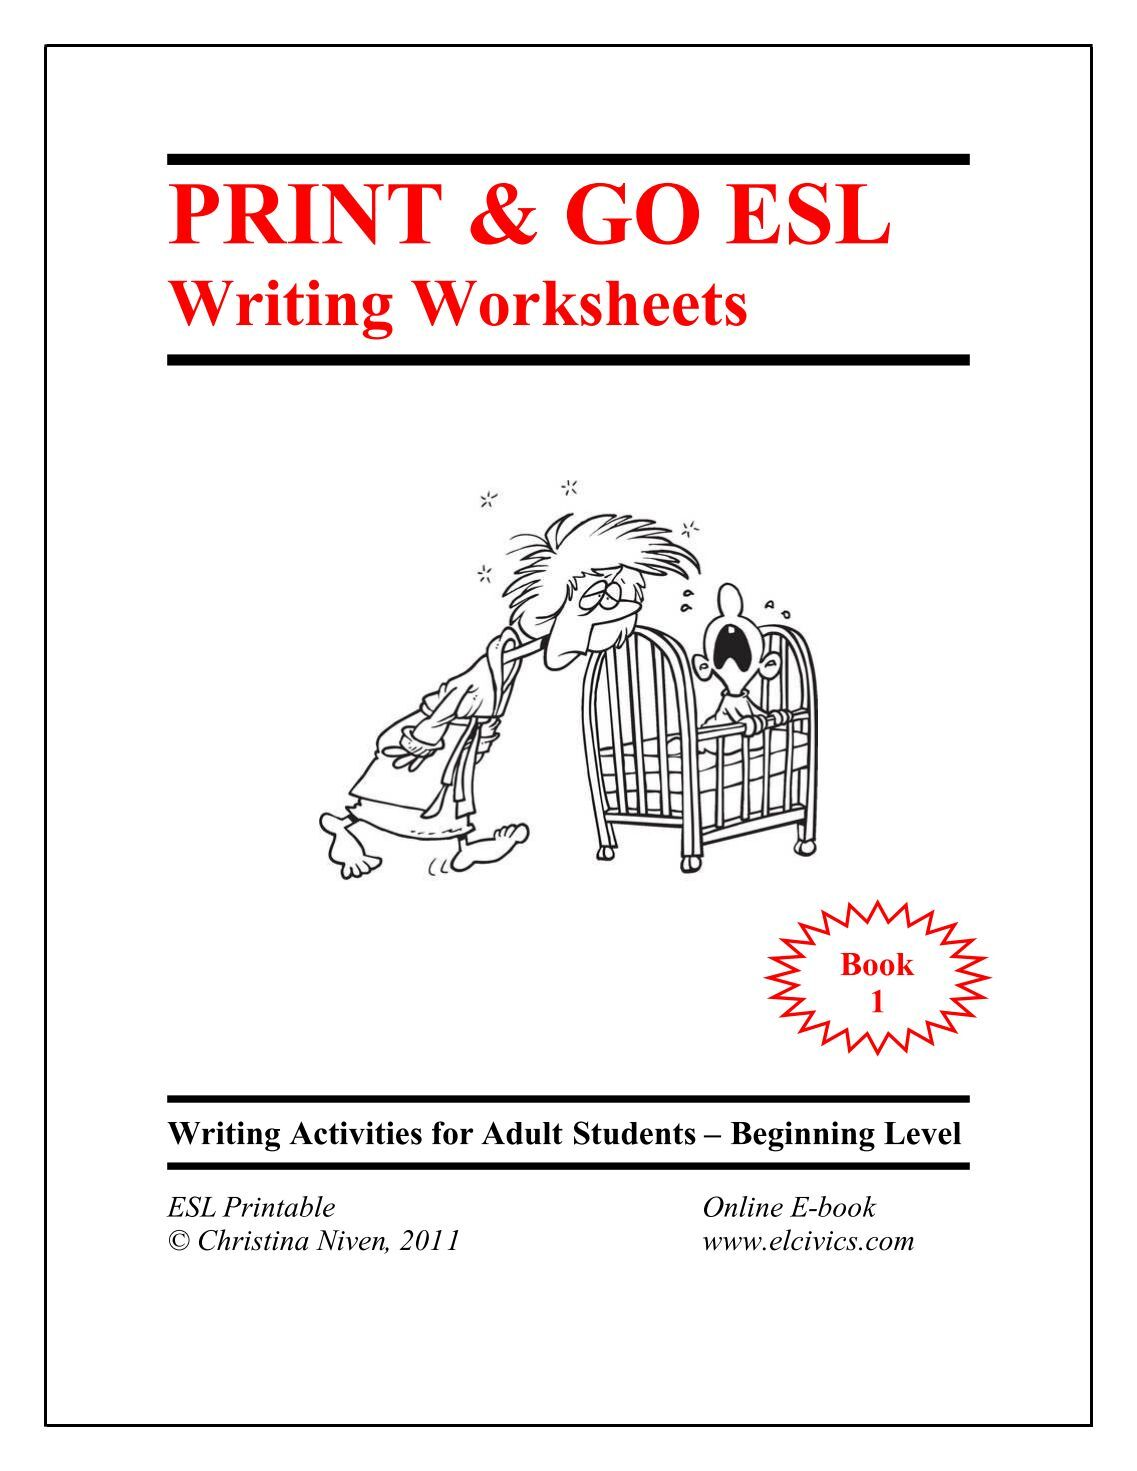 Worksheets Esl Civics Worksheets worksheet civics worksheets onedirectiondaily study site 55 images federal government free esl phinixi for printables